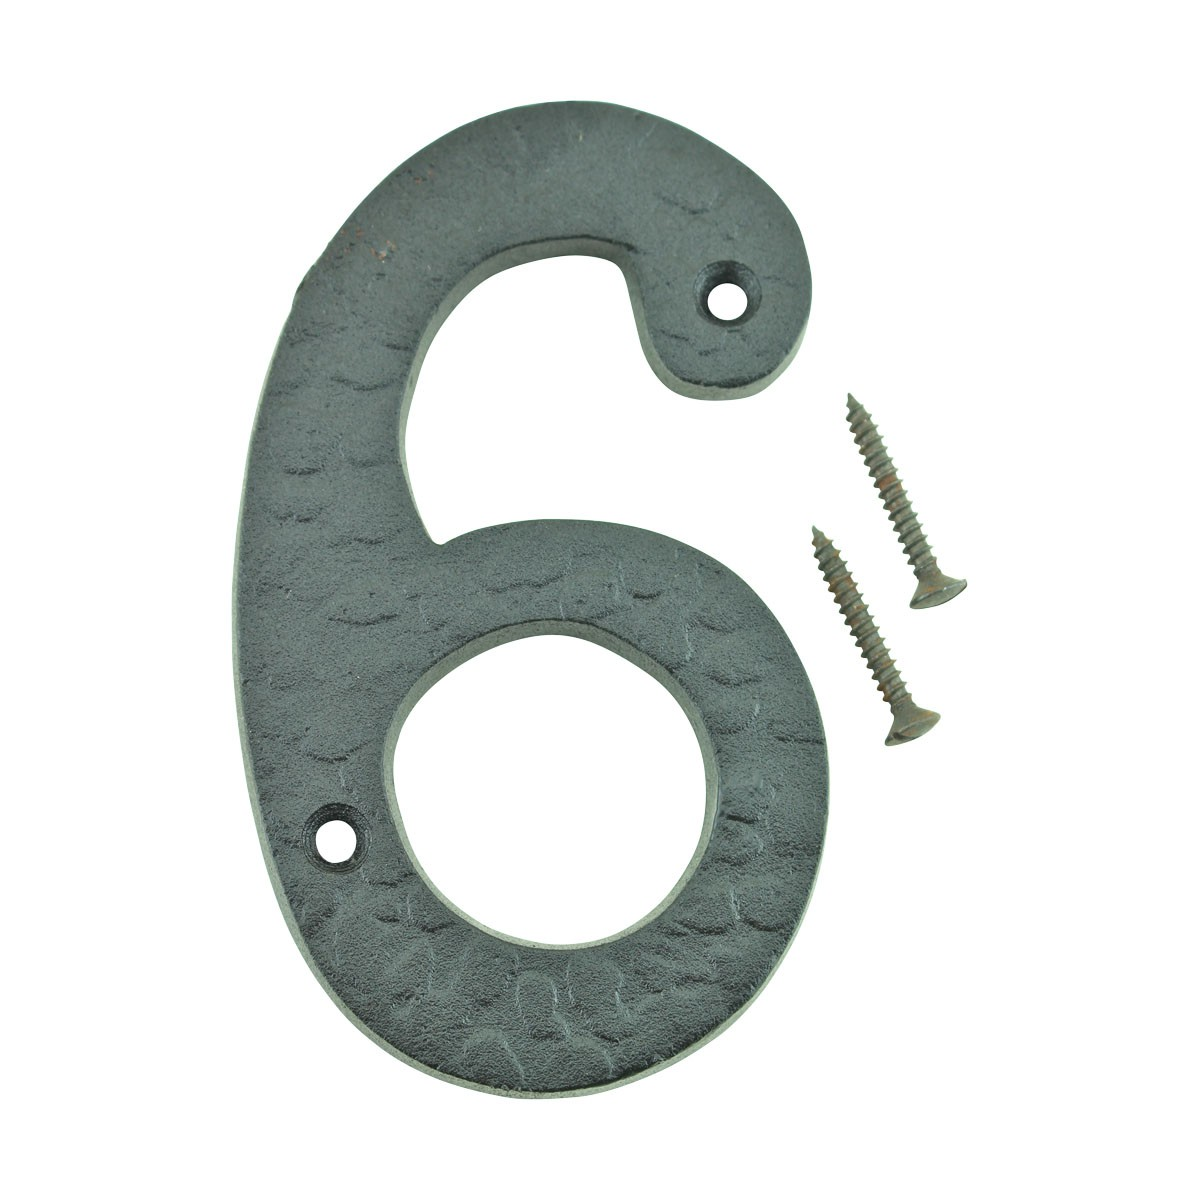 Number 6 or 9 House Number Black Wrought Iron 4H Mail Box Numbers Mailbox Numbers House Number